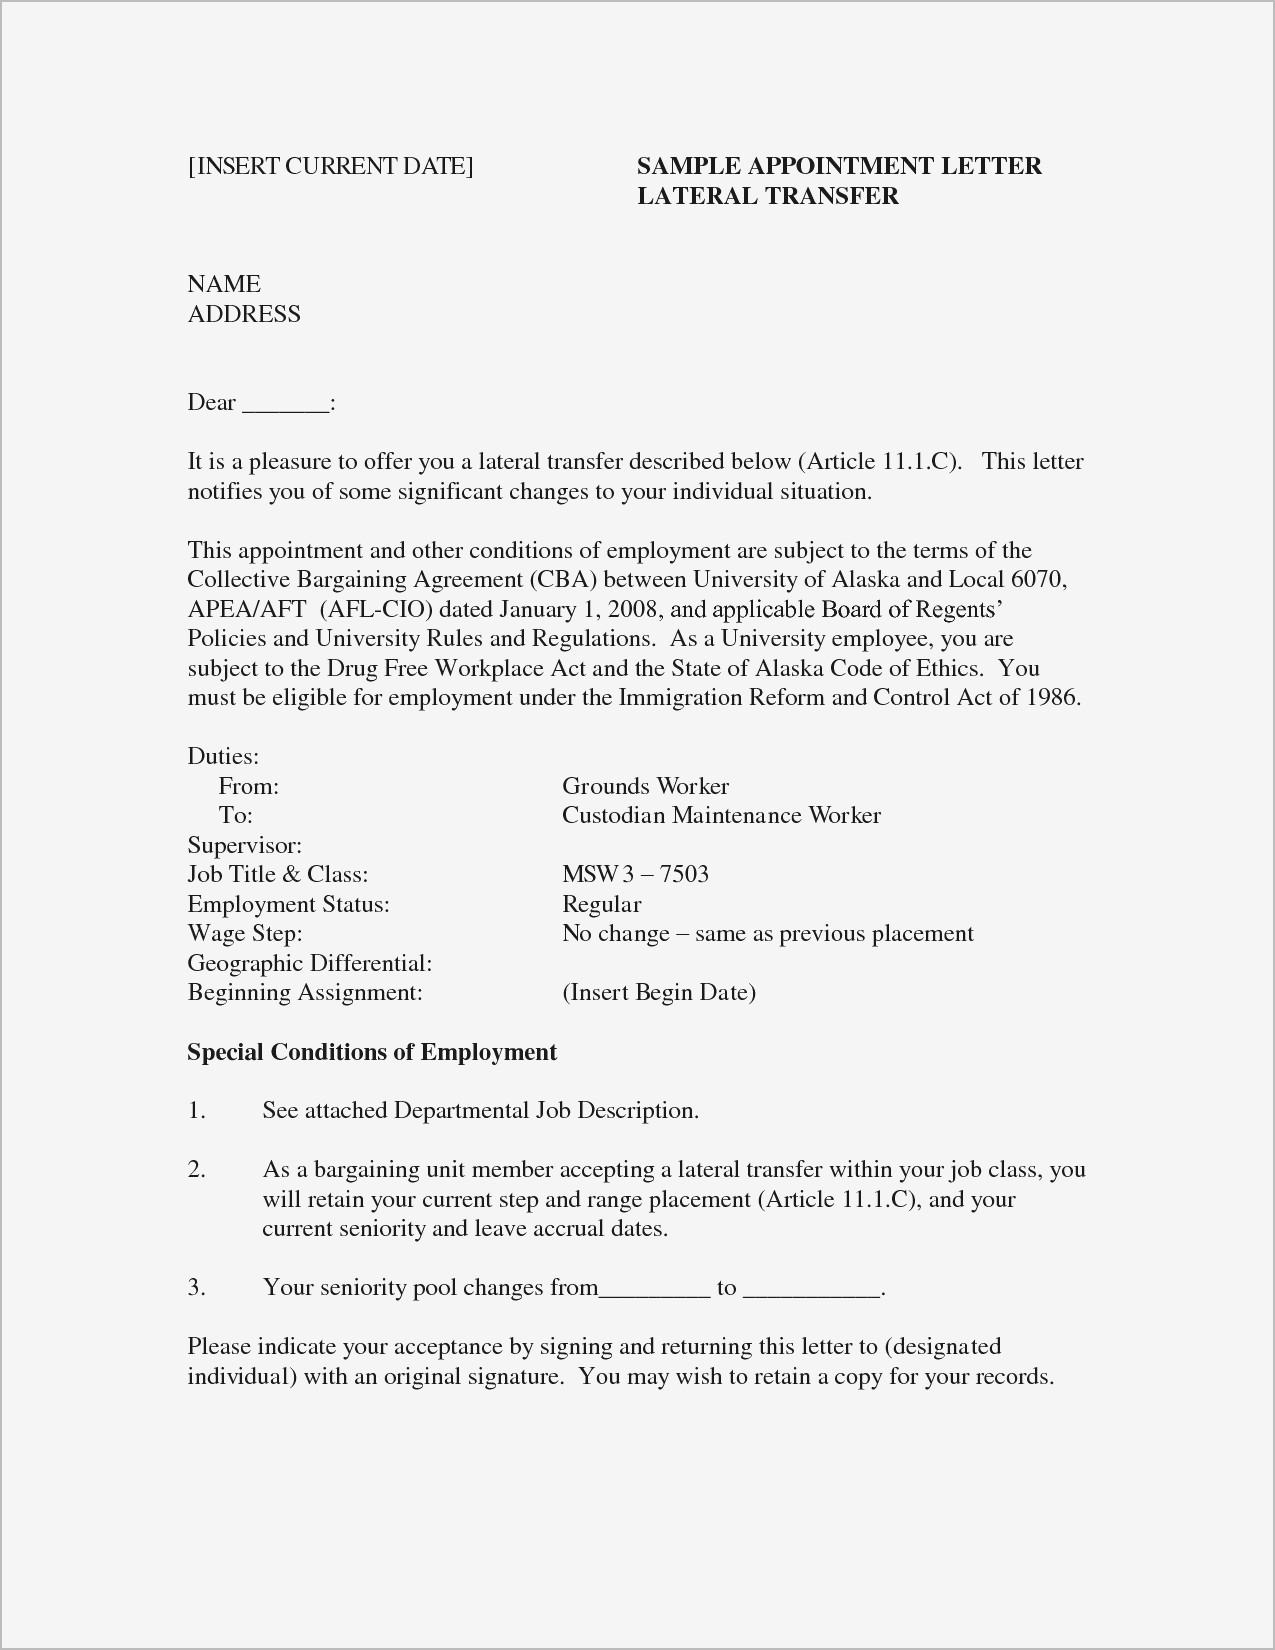 Confirmation Of Employment Letter Template - Graphic Design Cover Letter Examples Samples